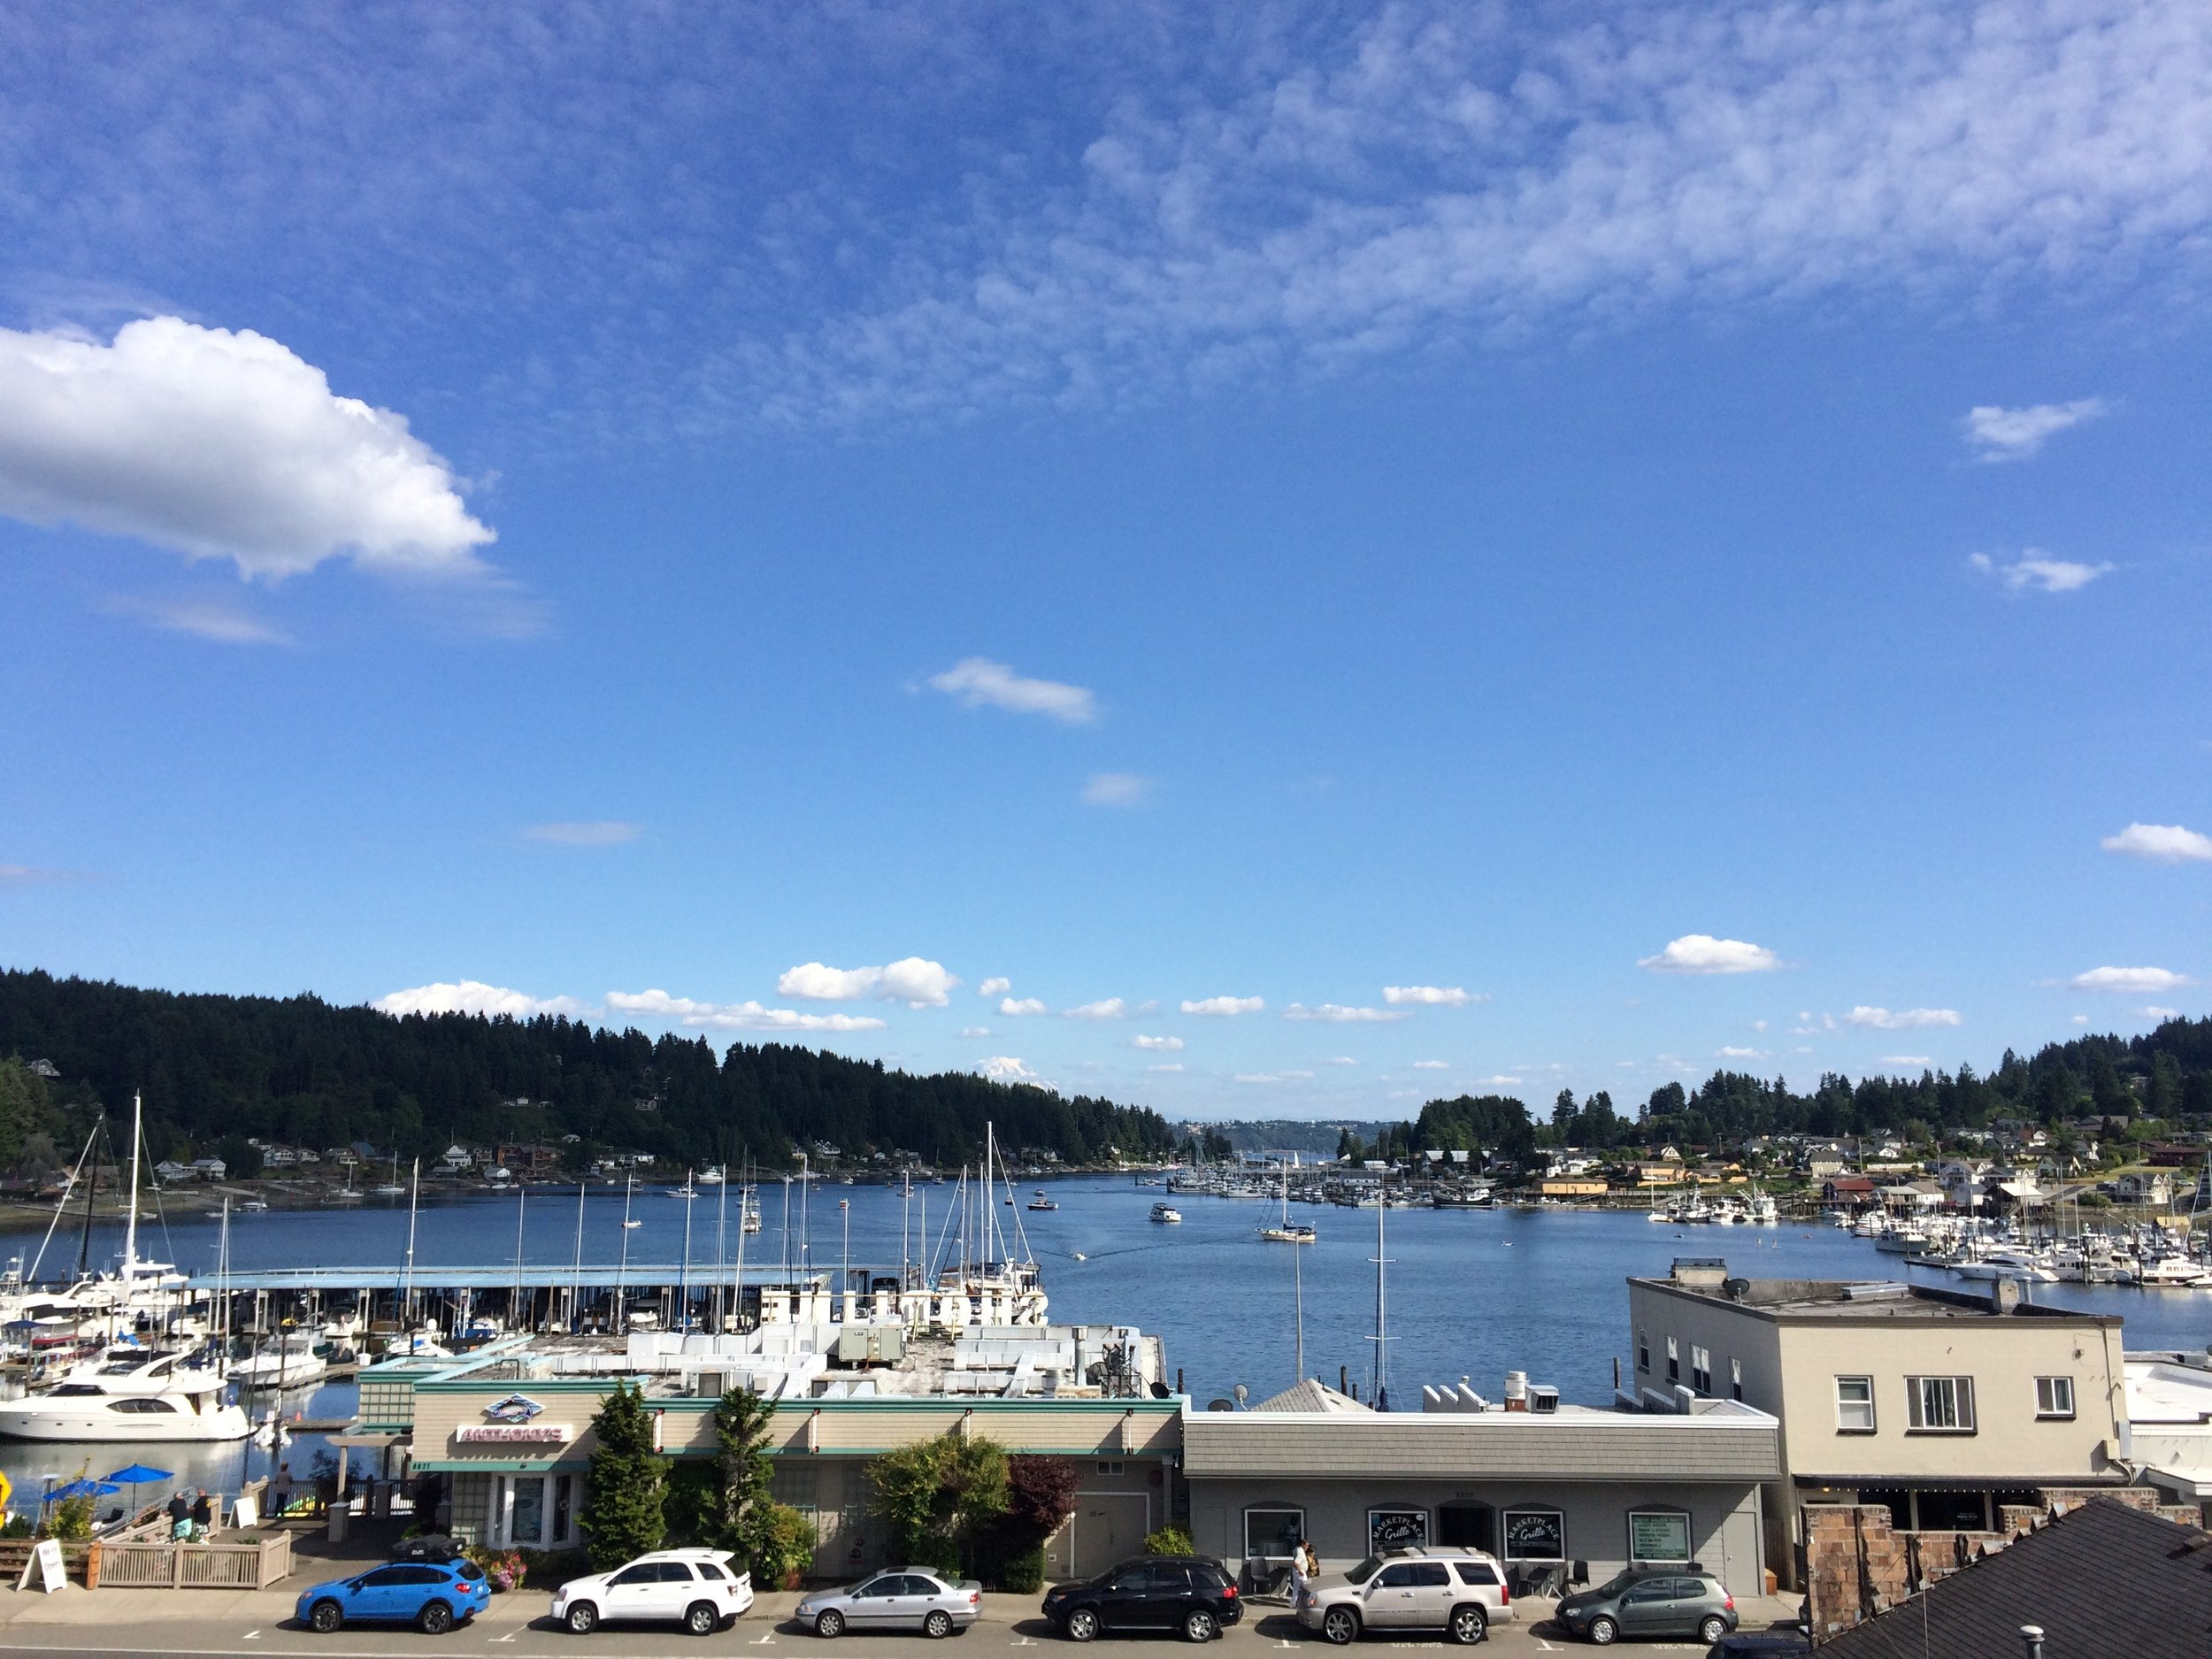 Marinas, parks, and restaurants, as well as beautiful historic and modern homes skirt the shores of Gig Harbor Bay.